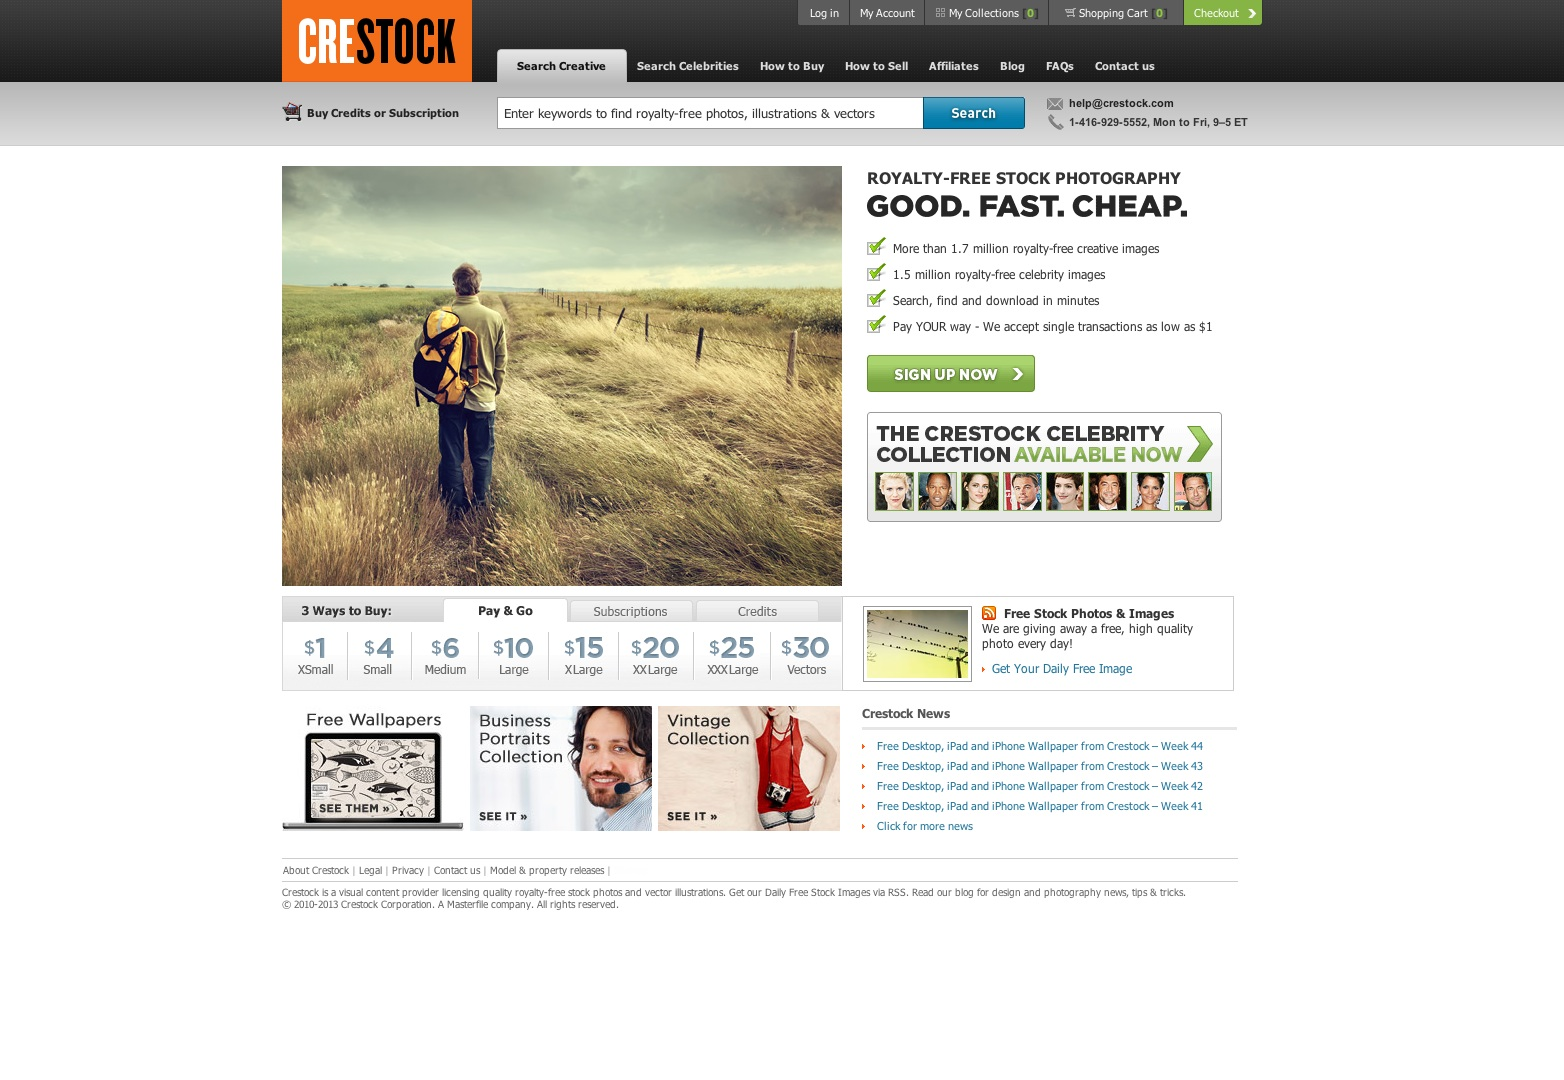 Crestock.com | Royalty-Free Stock Photos & Vector Illustrations